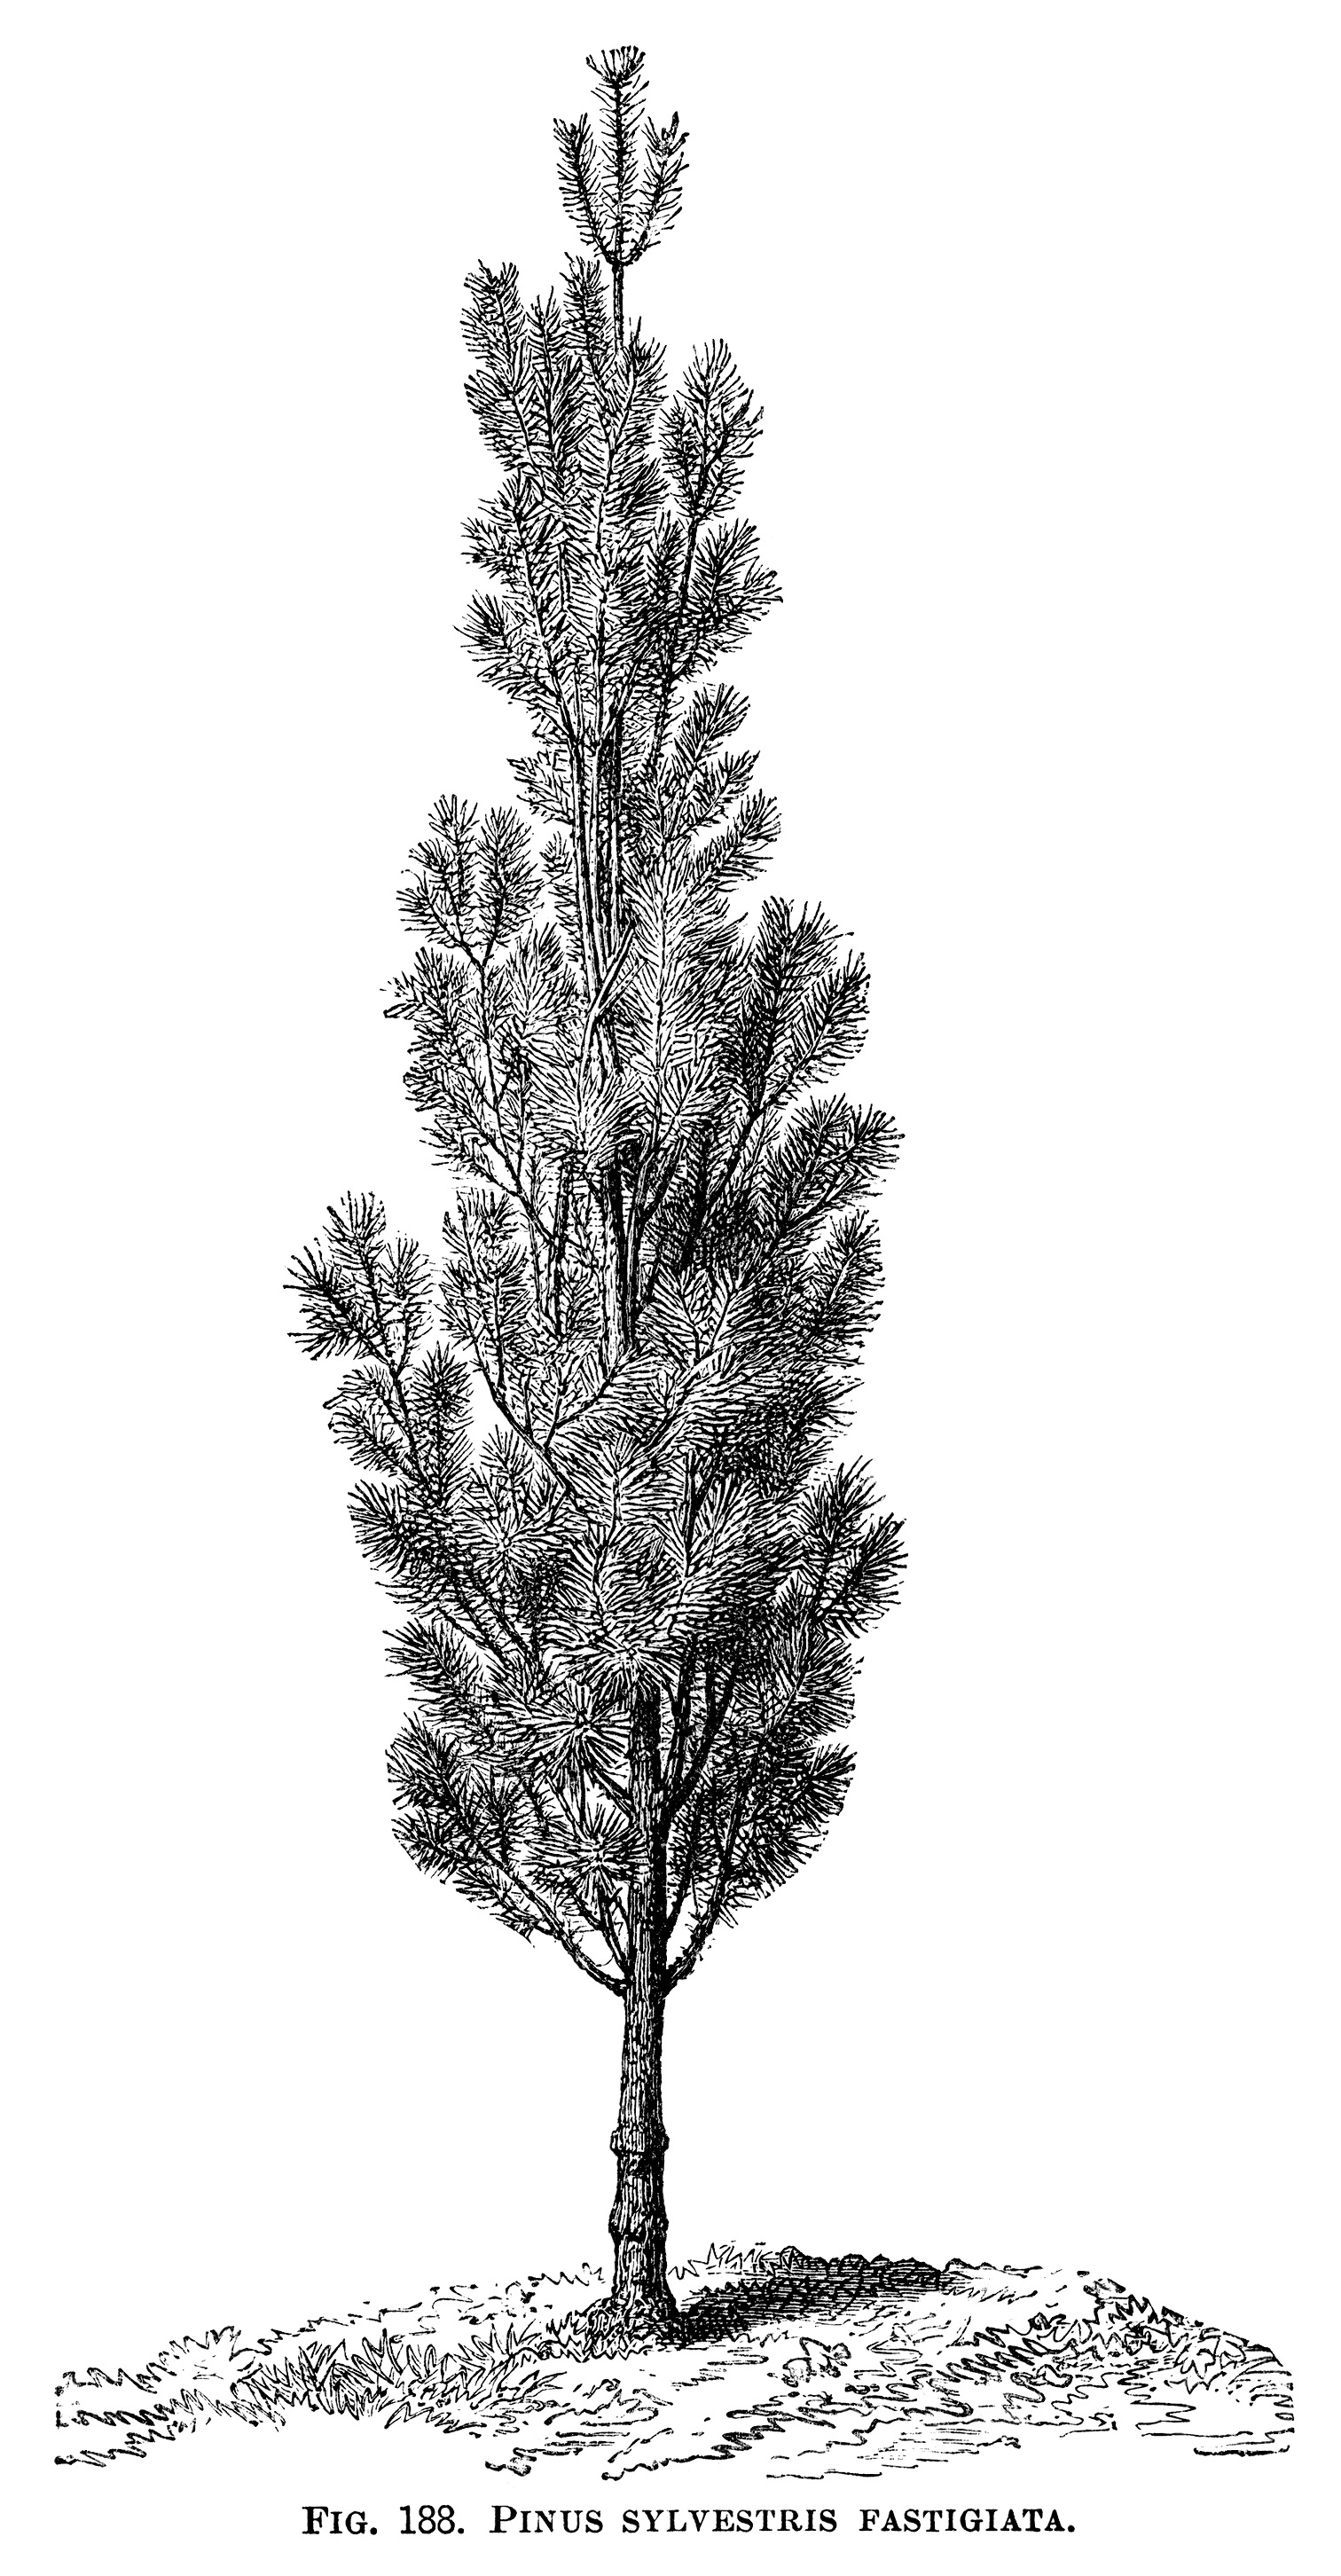 black and white graphics, botanical pine tree illustration, vintage tree clip art, pinus sylvestris fastigiata, Christmas tree engraving